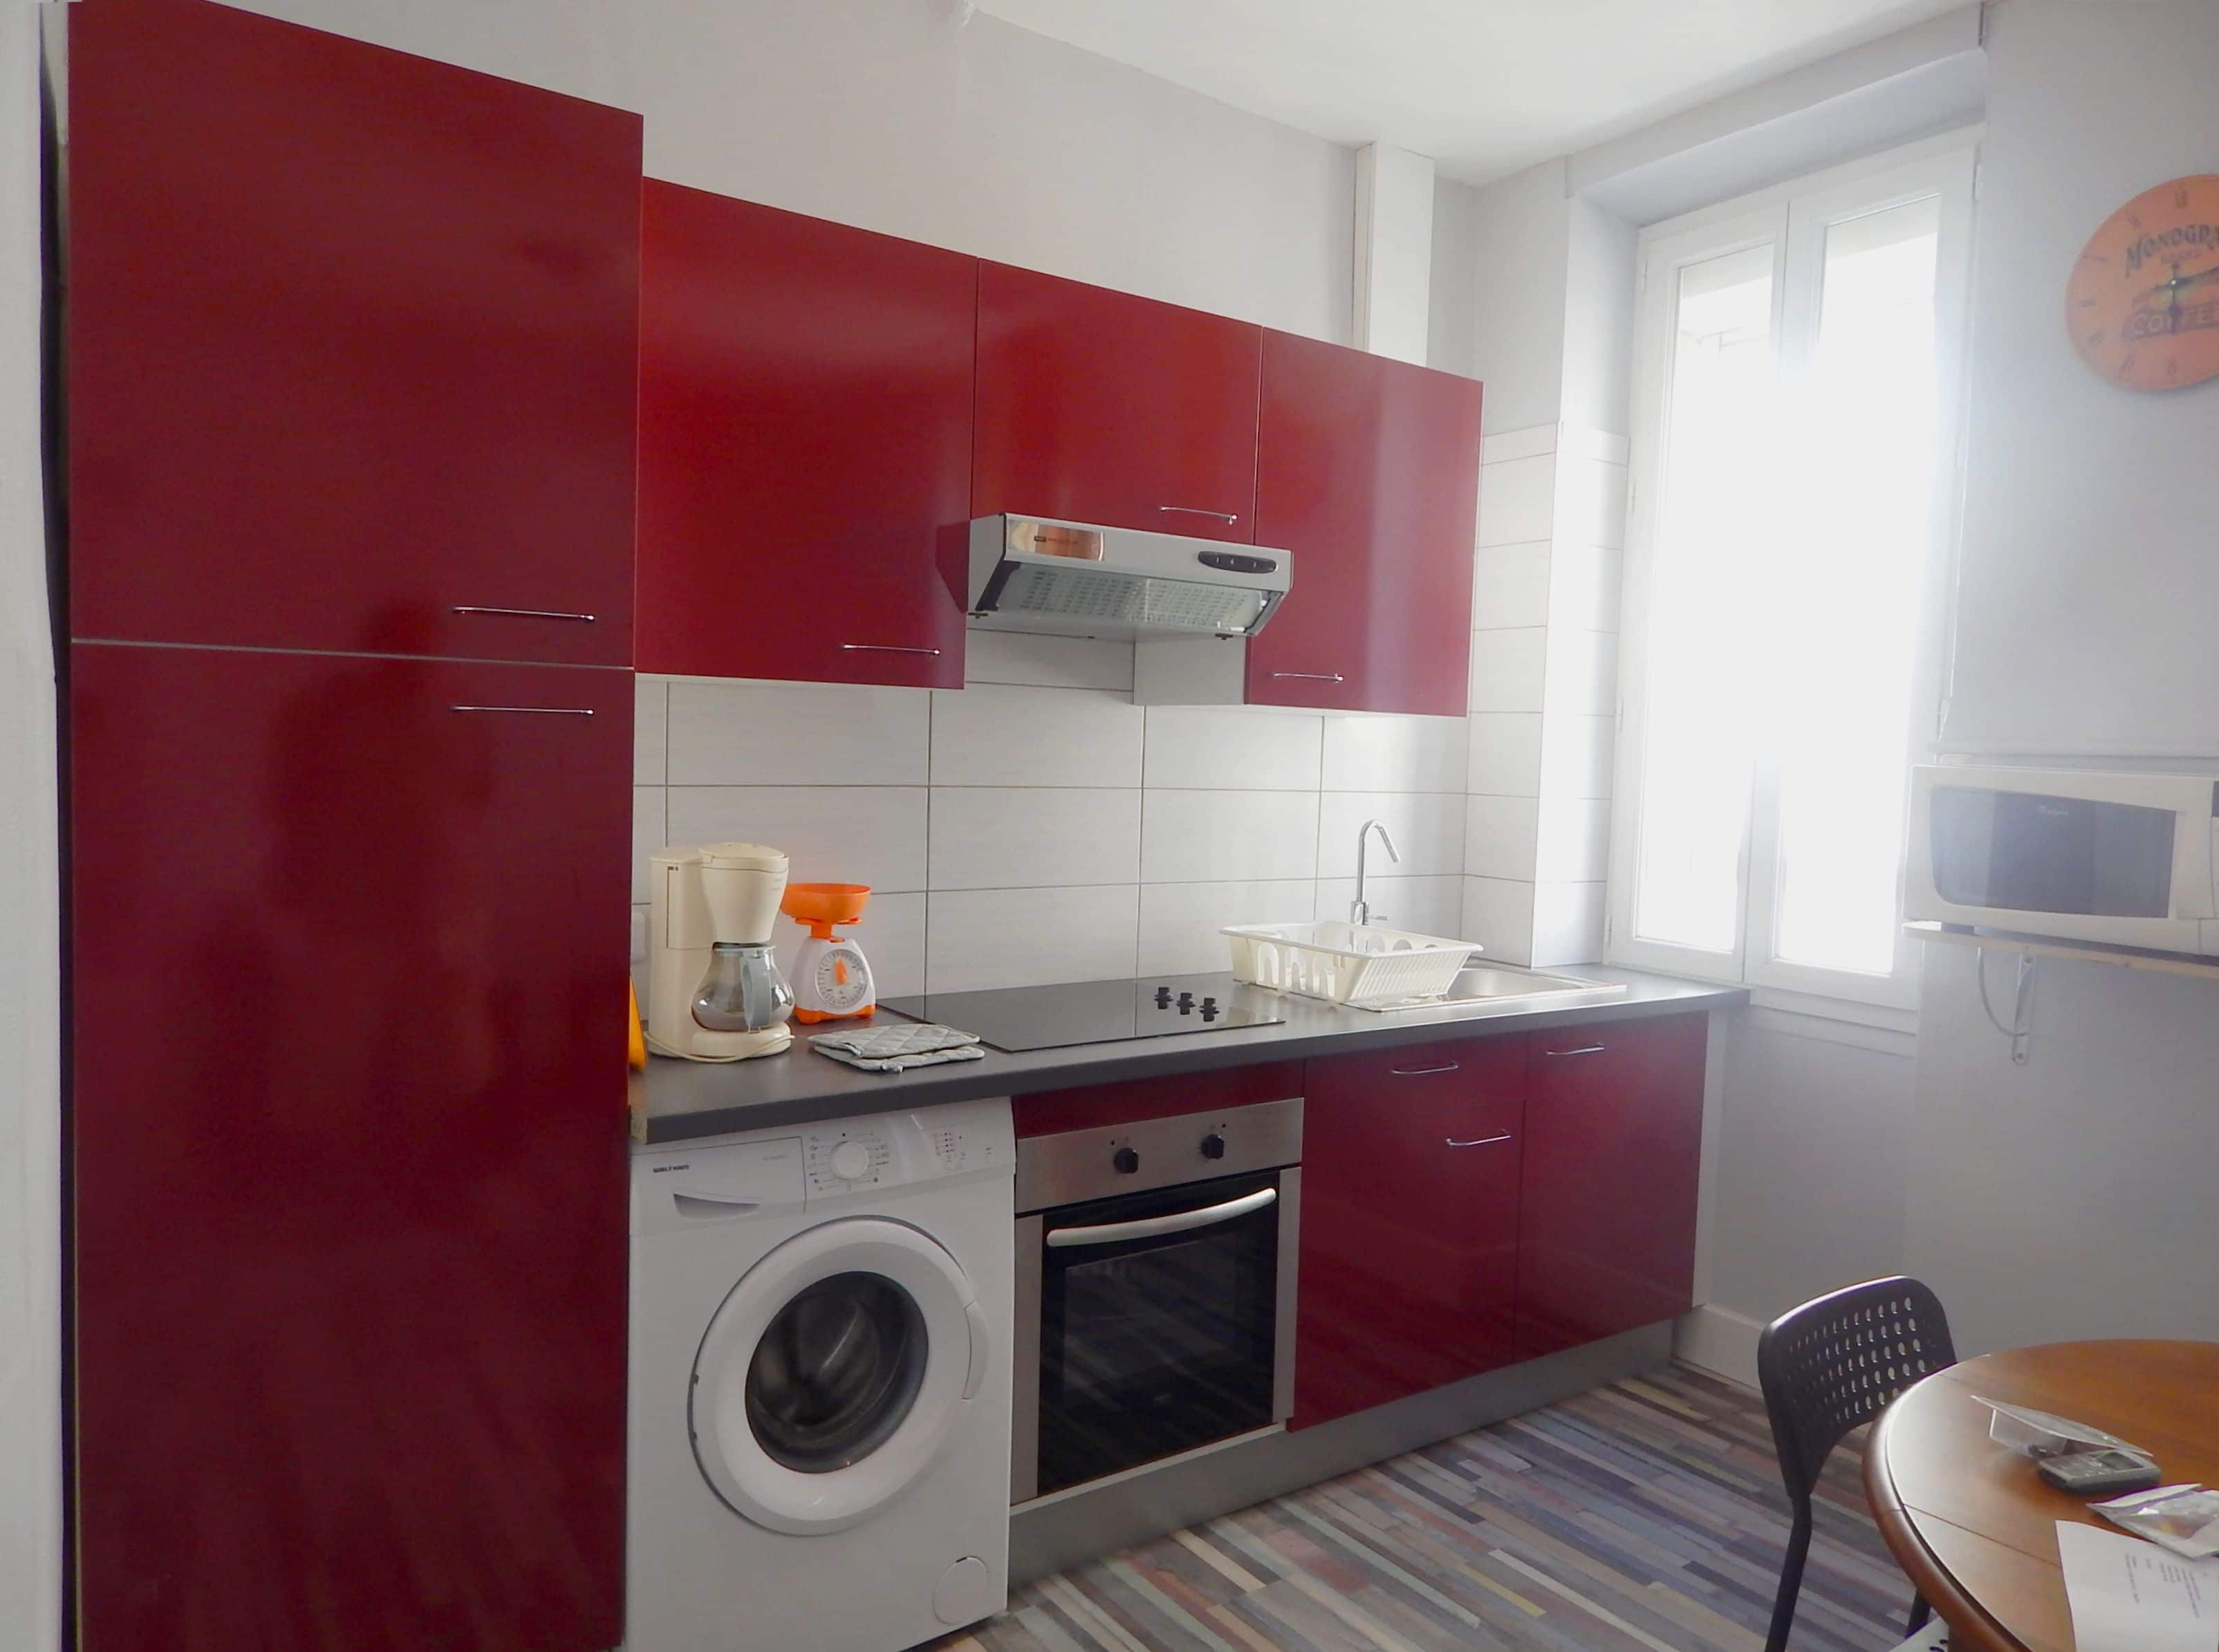 Appartement meubl a louer marseille 13010 type 2 for Location studio meuble marseille